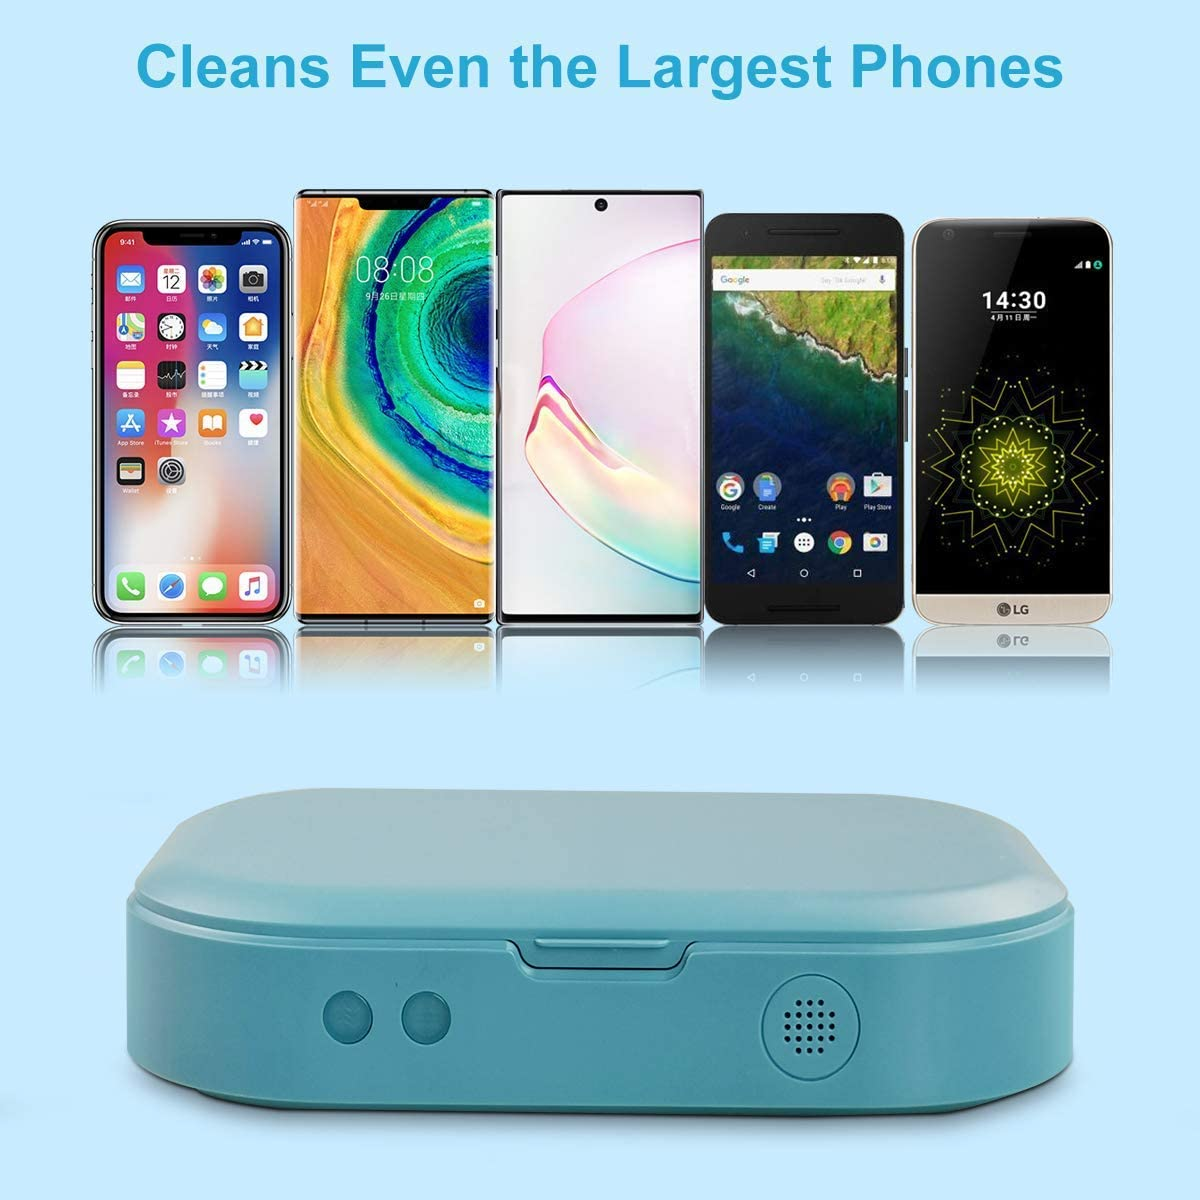 Portable Cell Phone Sterilizer,Aromatherapy Function Disinfector UV Cell Phone Sanitizer Phone Cleaner Box for All iPhone Android Cellphone Toothbrush Salon Tools Jewelry Watches